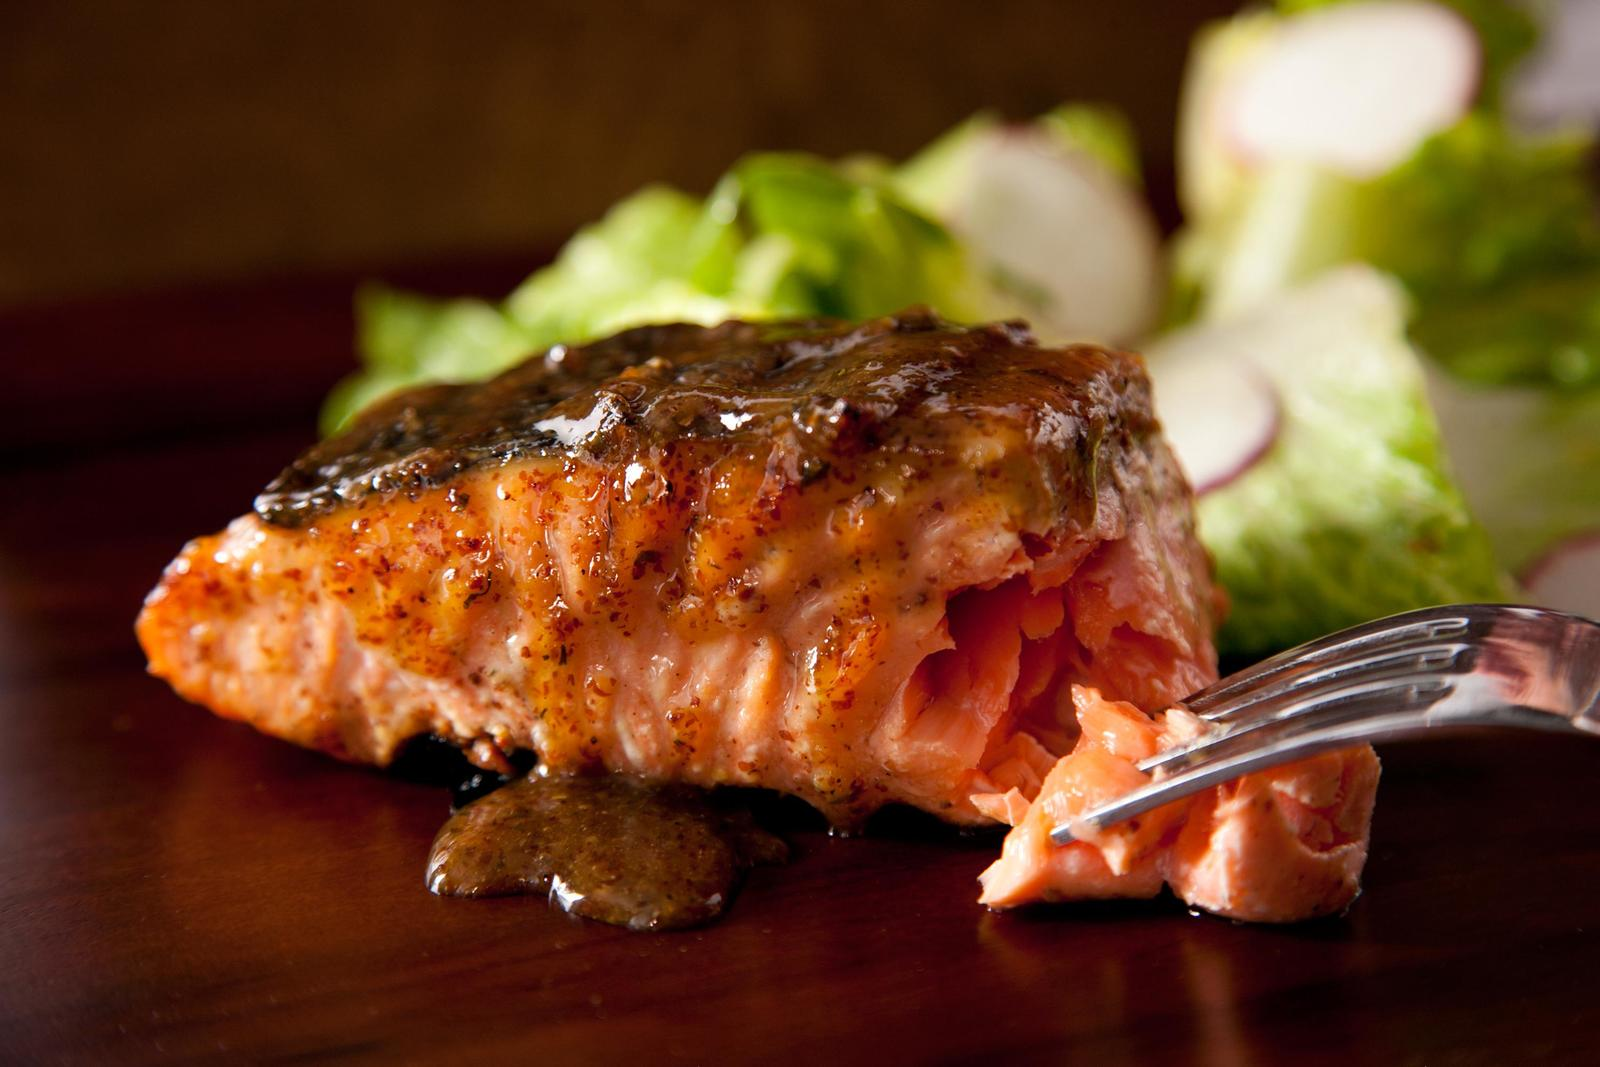 Tom's Maple Balsamic Glazed Grilled Salmon